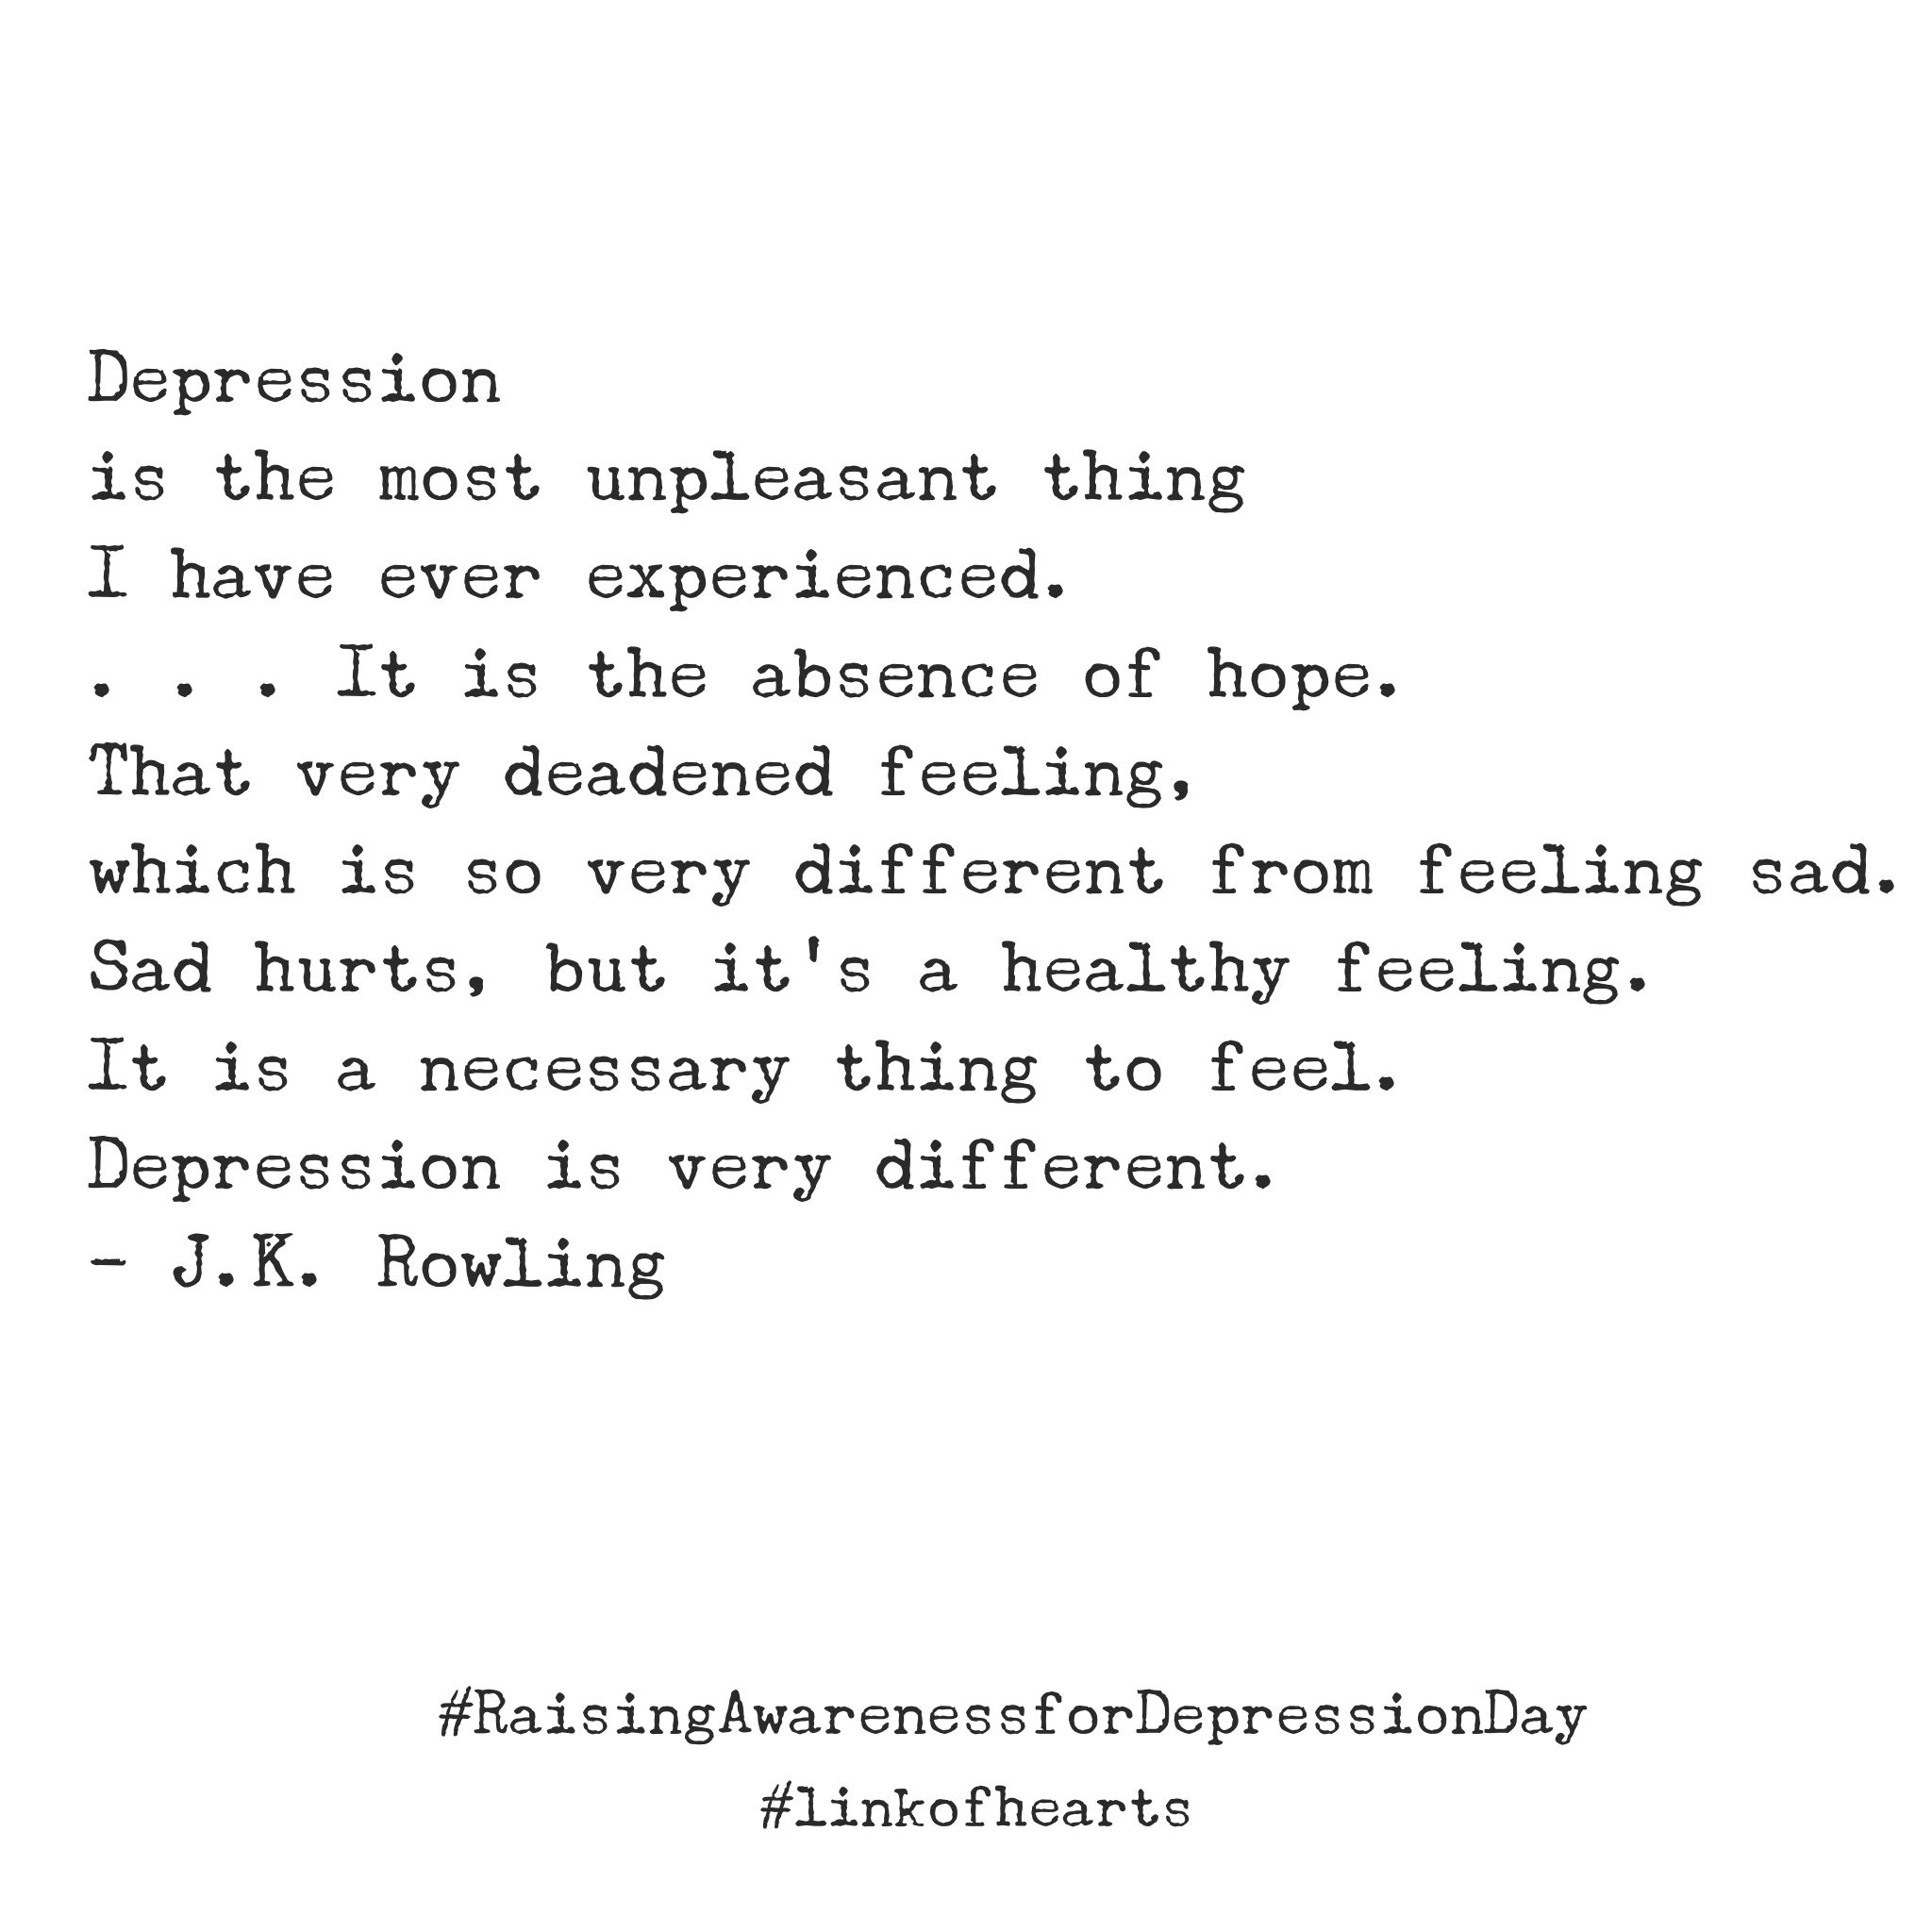 Quote about depression from JK Rowling